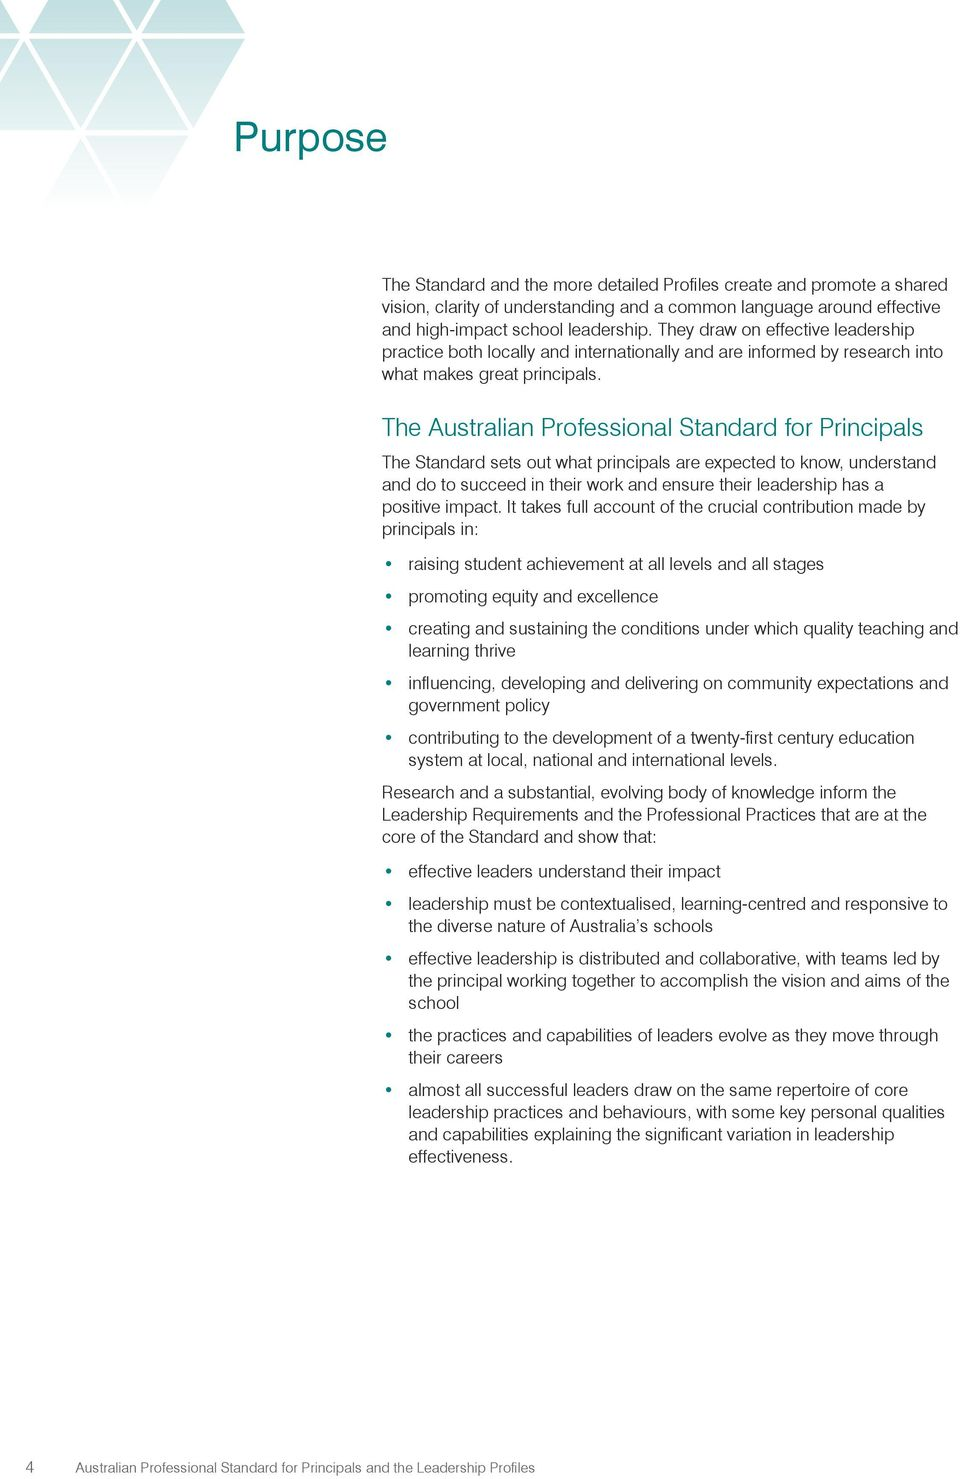 The Australian Professional Standard for Principals The Standard sets out what principals are expected to know, understand and do to succeed in their work and ensure their leadership has a positive